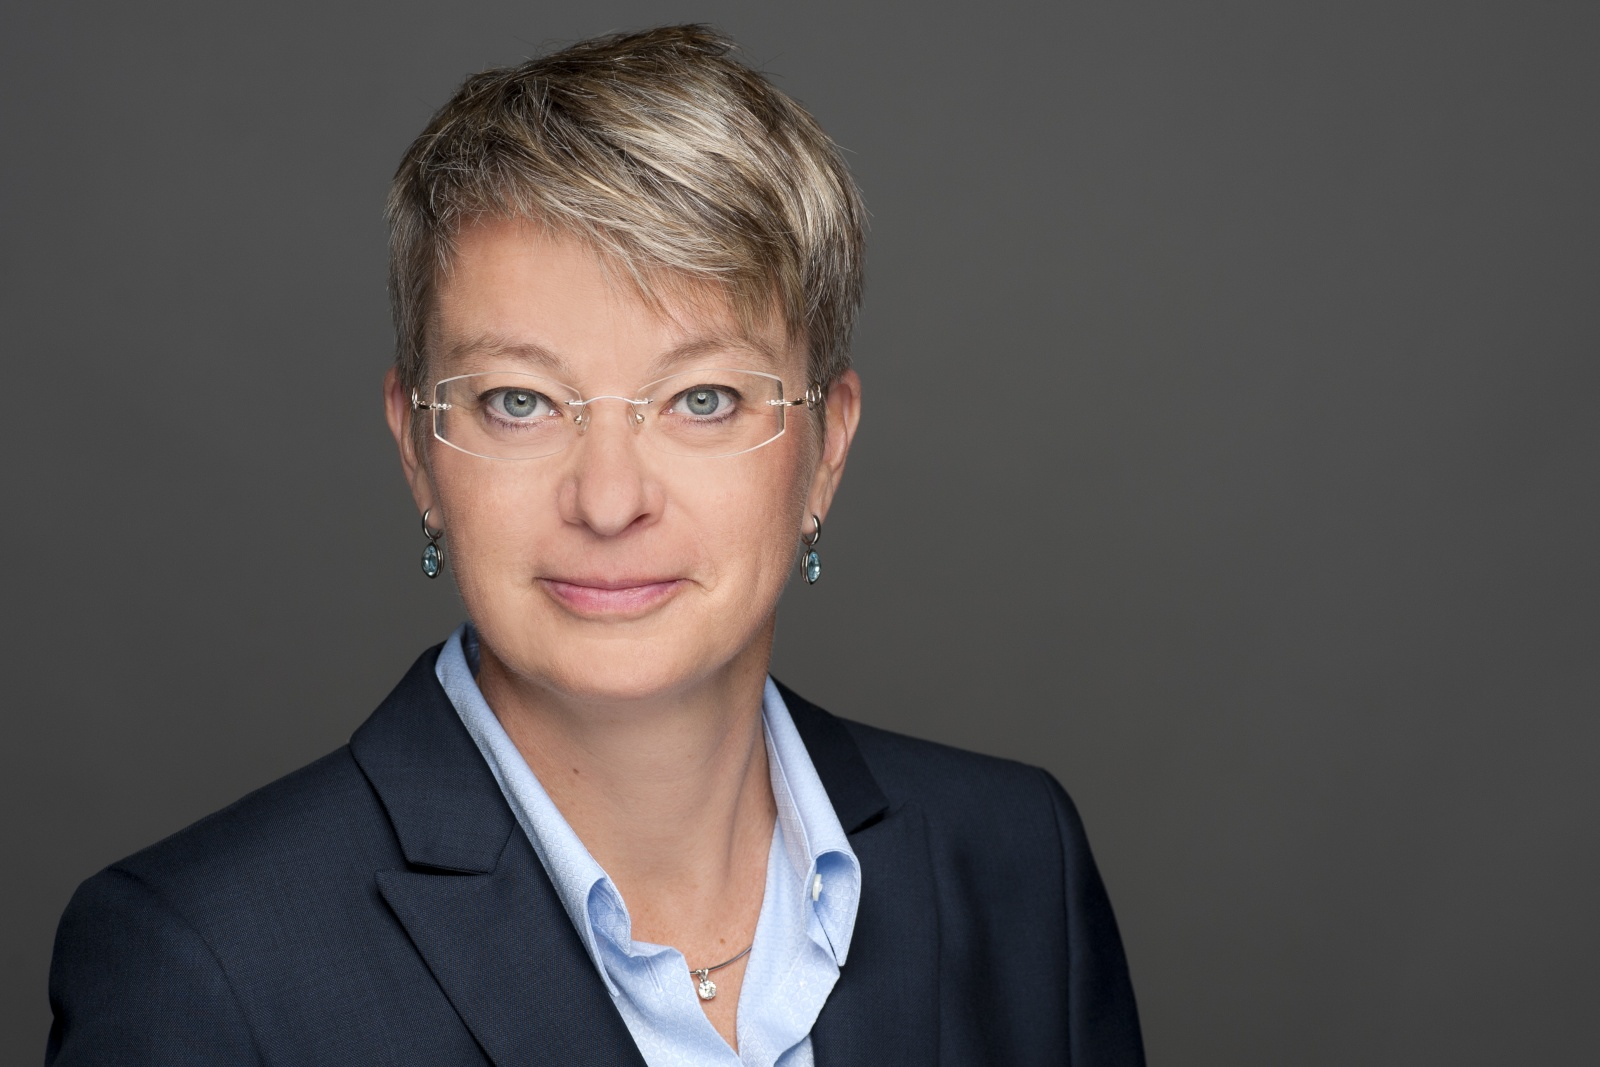 Portrait von Ulrike Bertrand, der Inhaberin der Moving Supplies GmbH